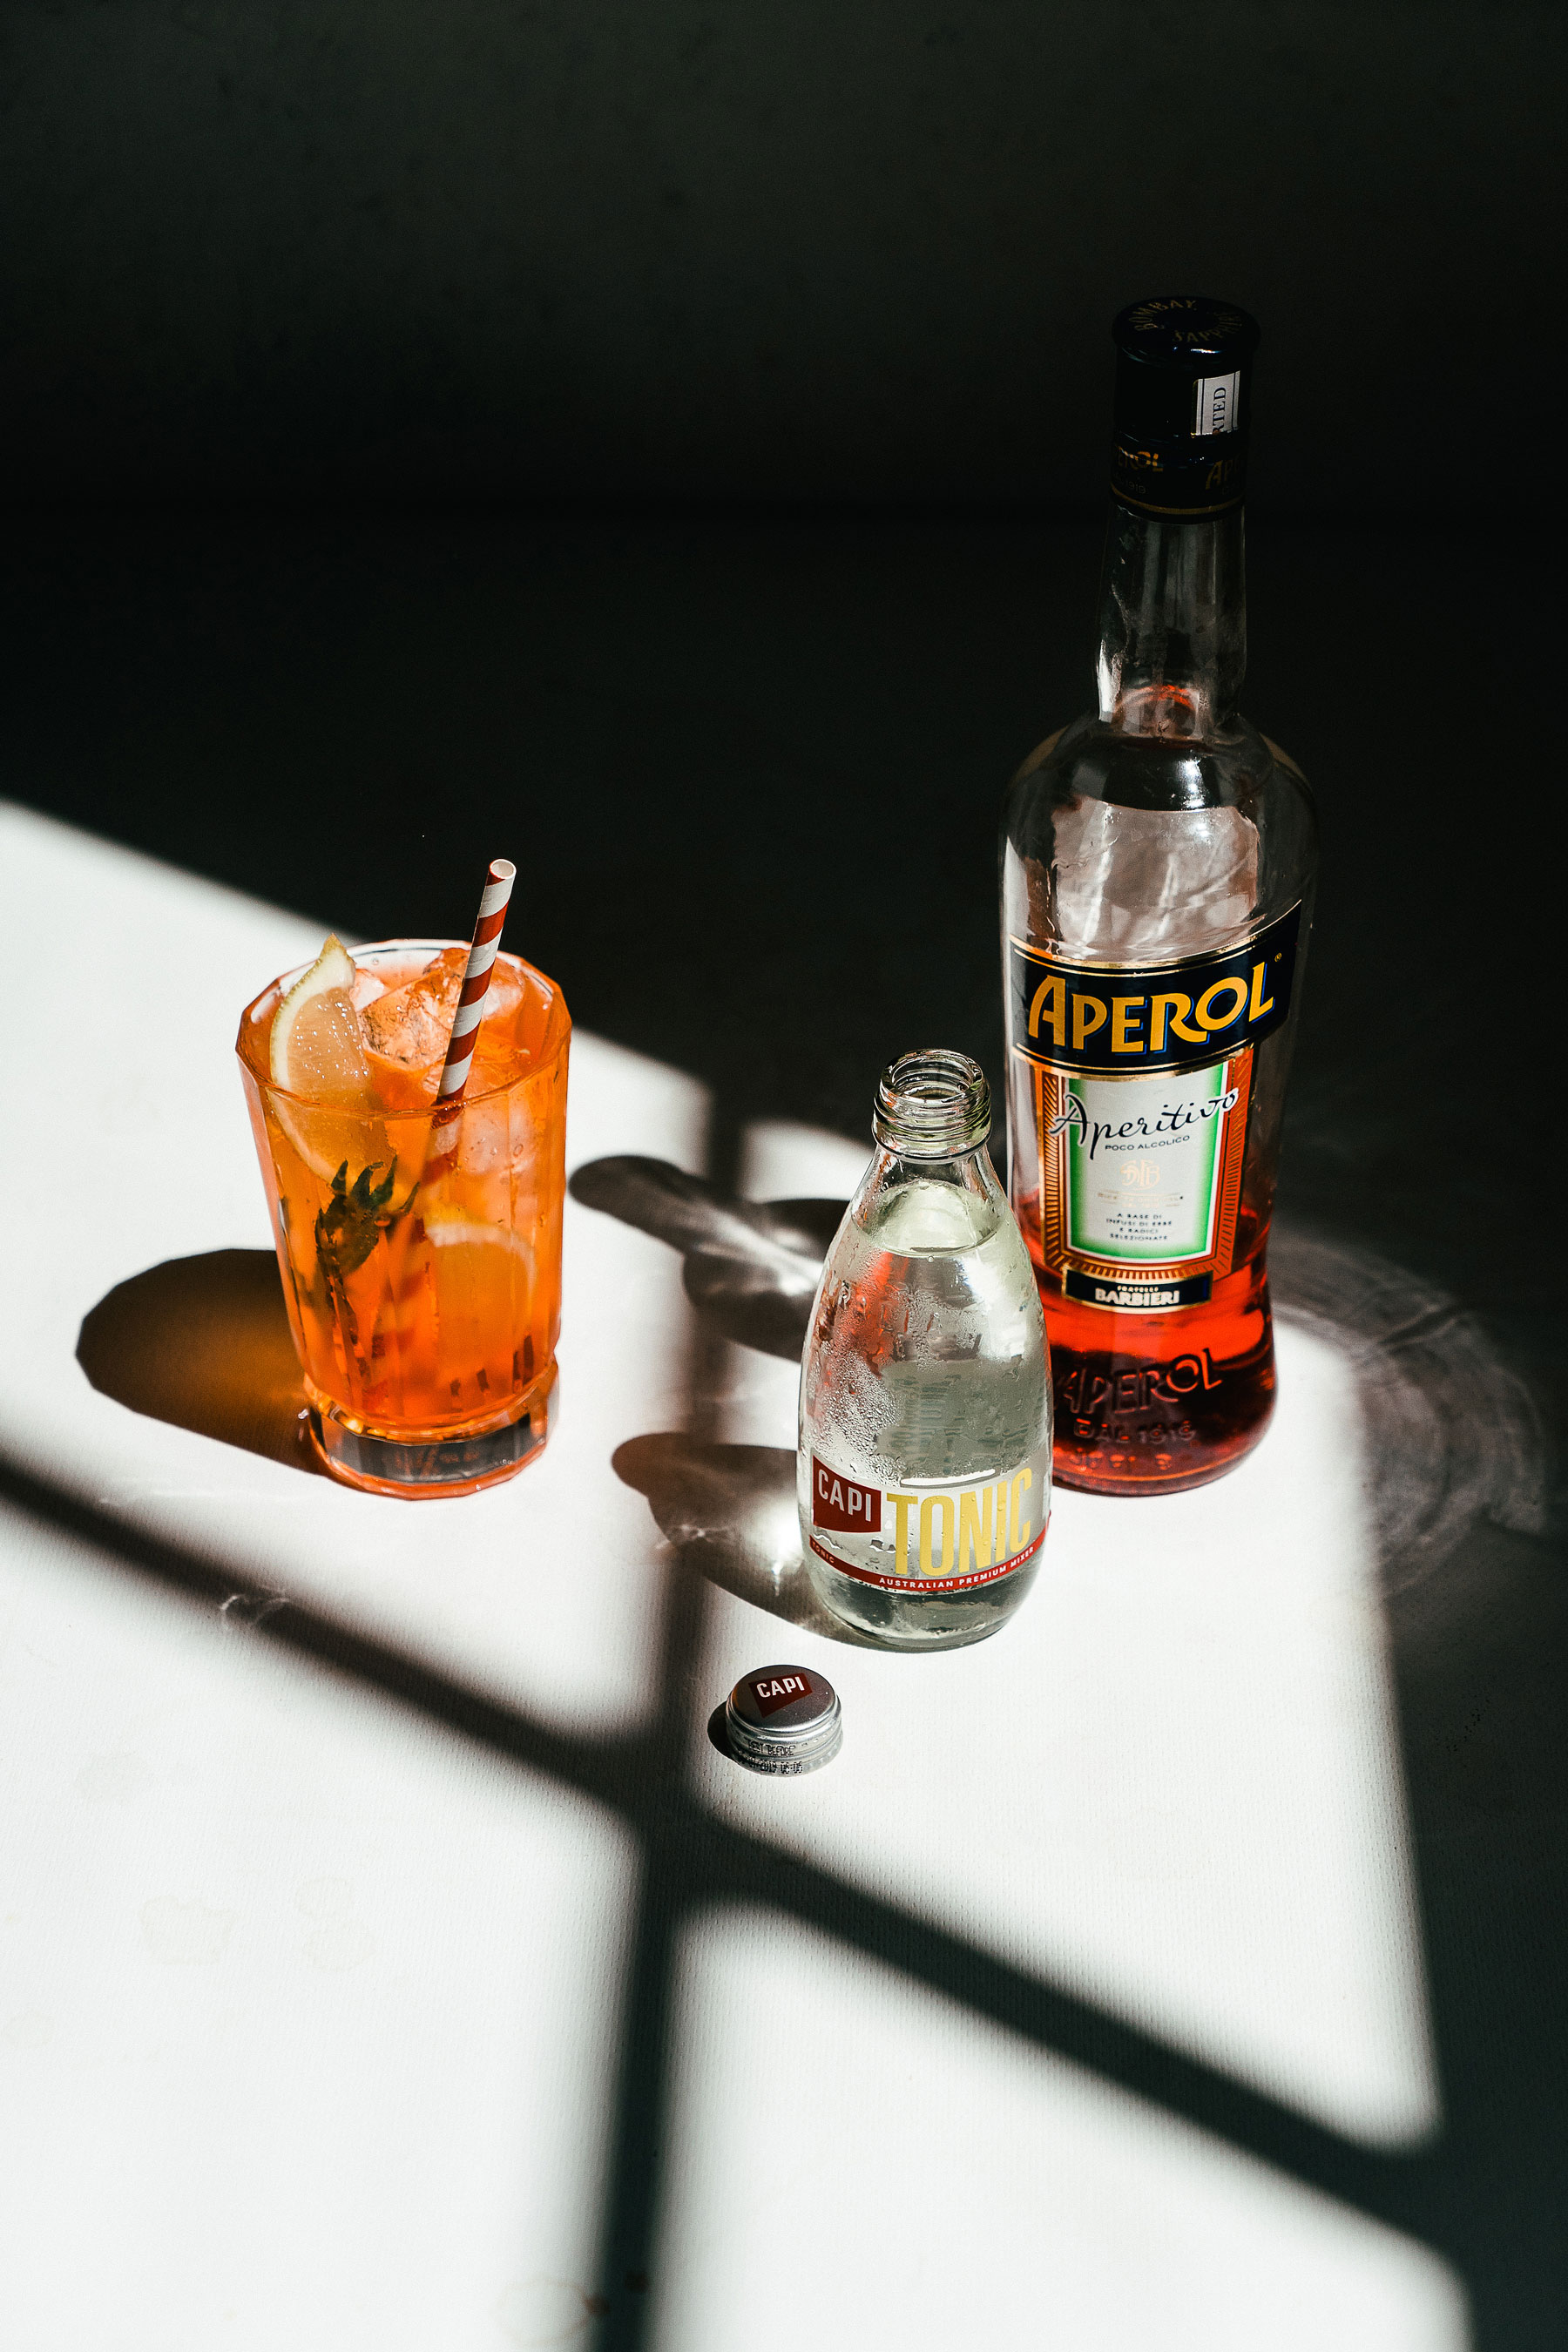 BLOOD-ORANGE-APEROL-12-WEB.jpg